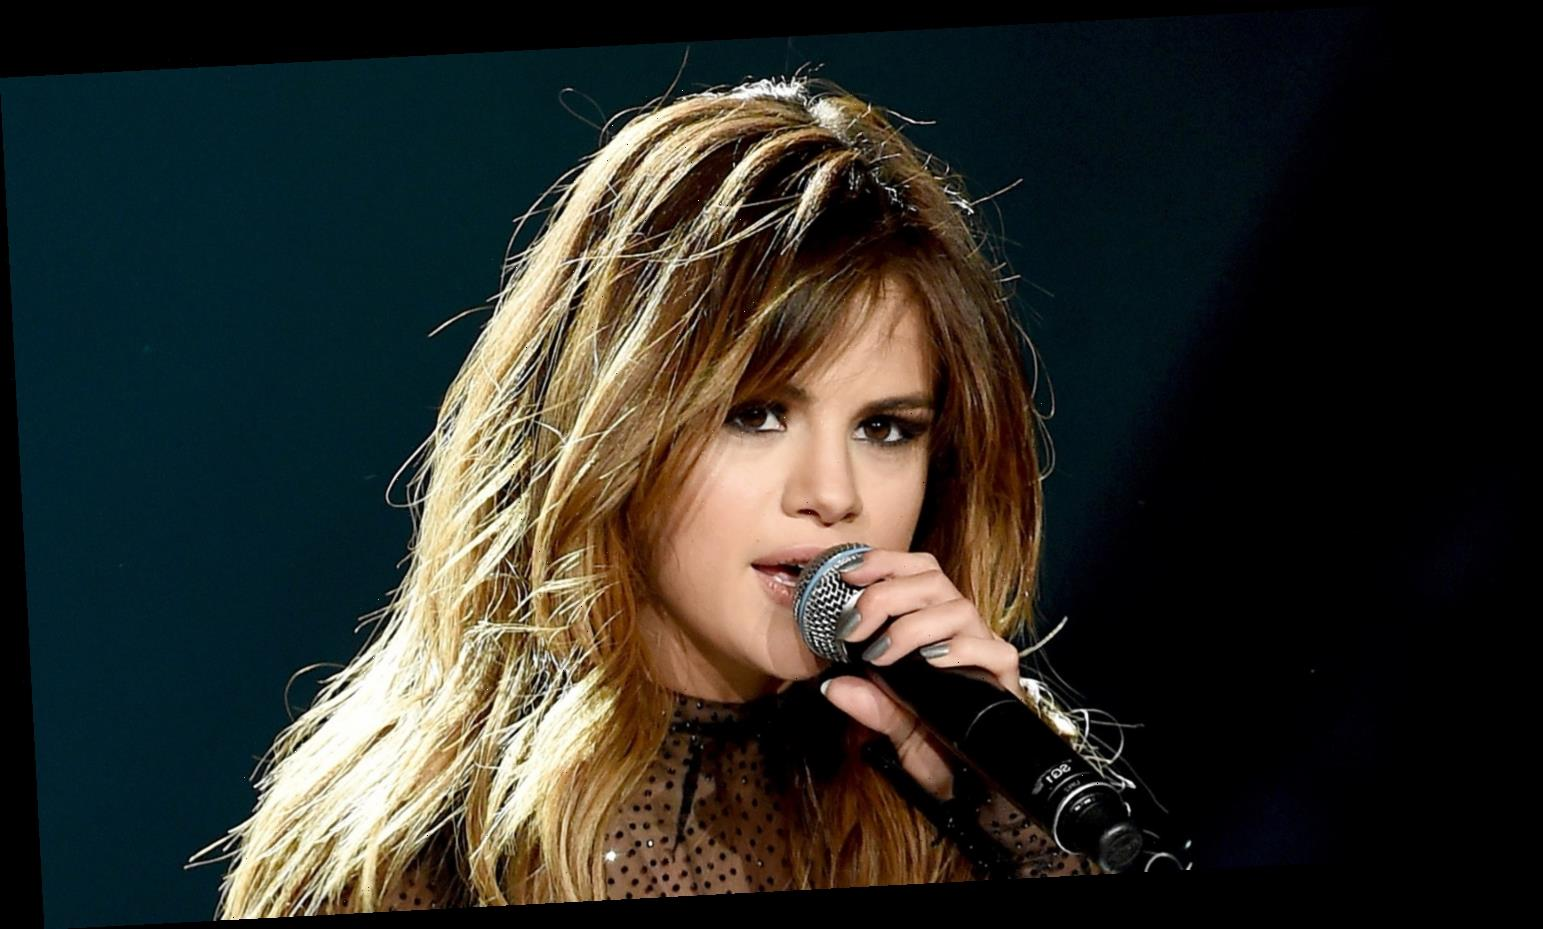 Selena Gomez's Fans Aren't Happy After Awards Show Airs Music Video Instead of Live Performance